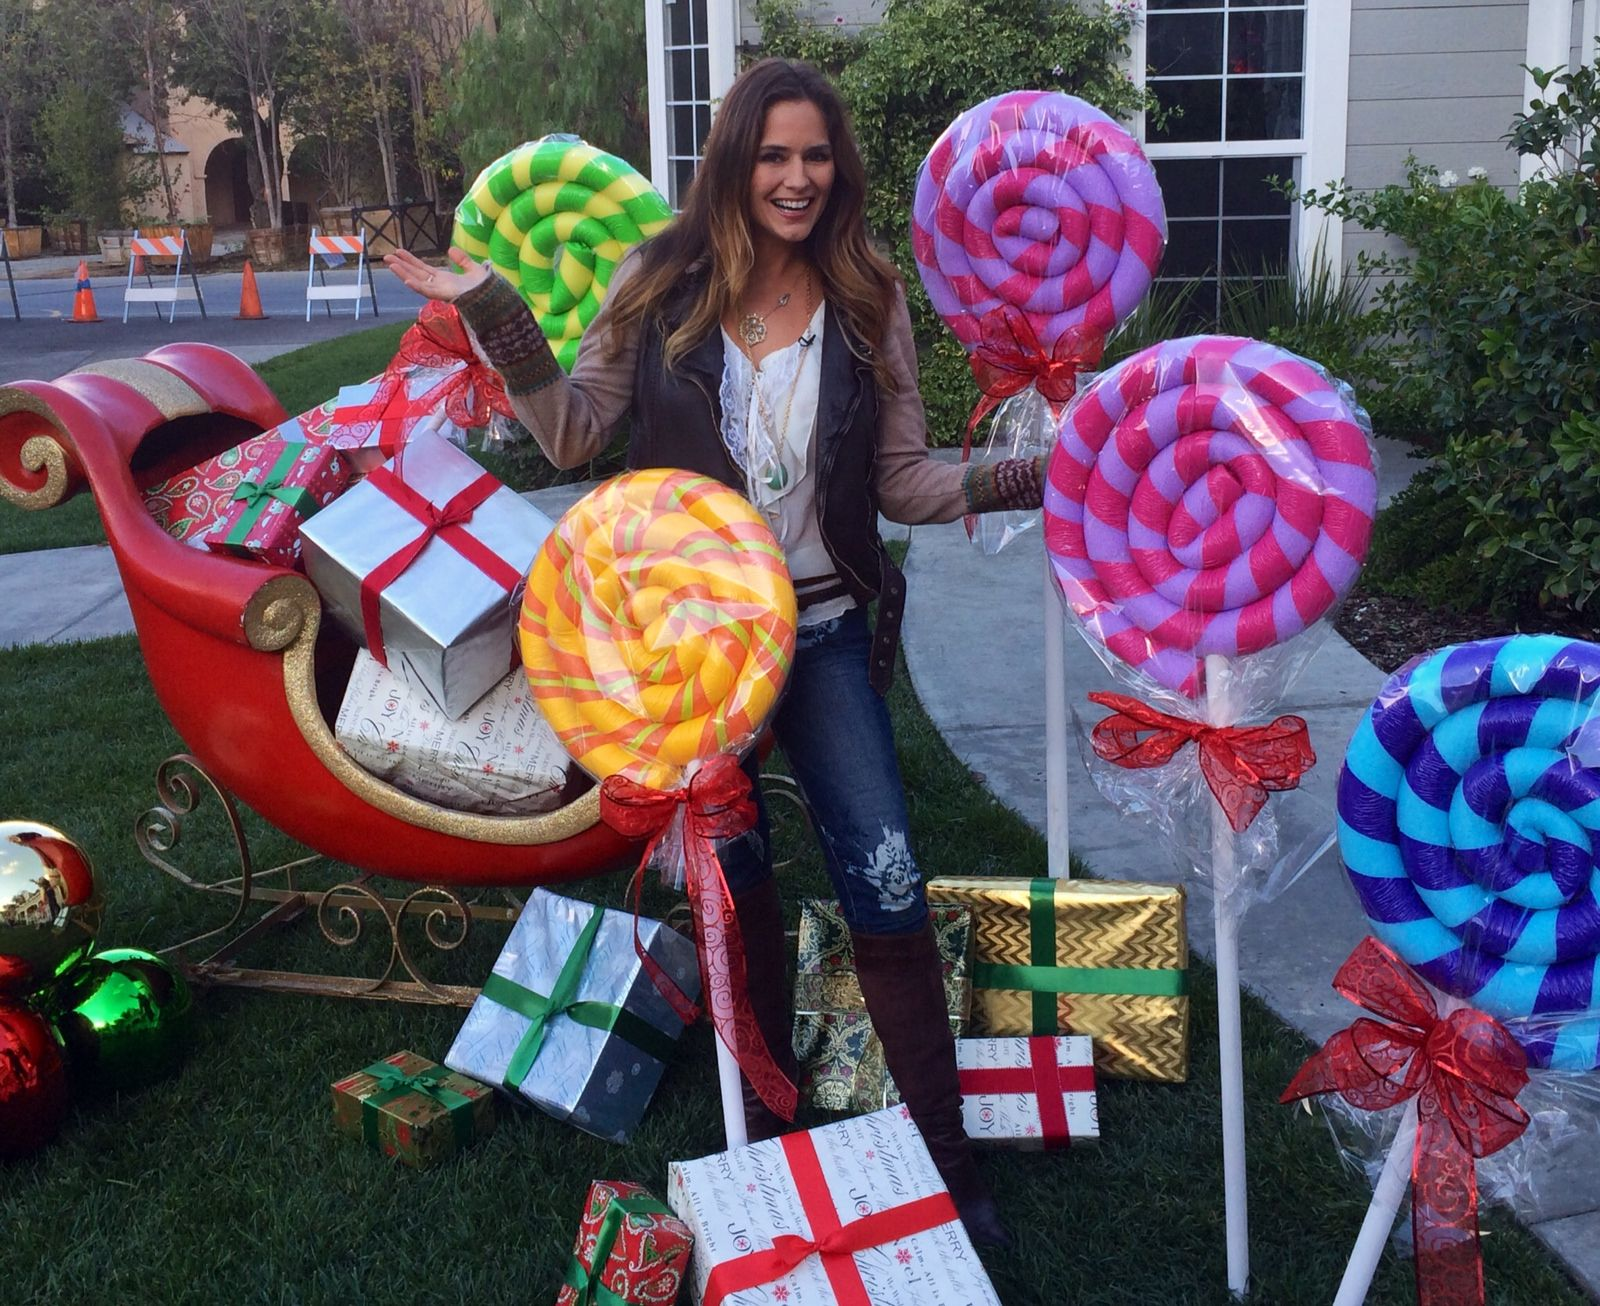 Homemade christmas yard decorations - Giant Lollipop Decorations From Pool Noodles And Pvc Pipe